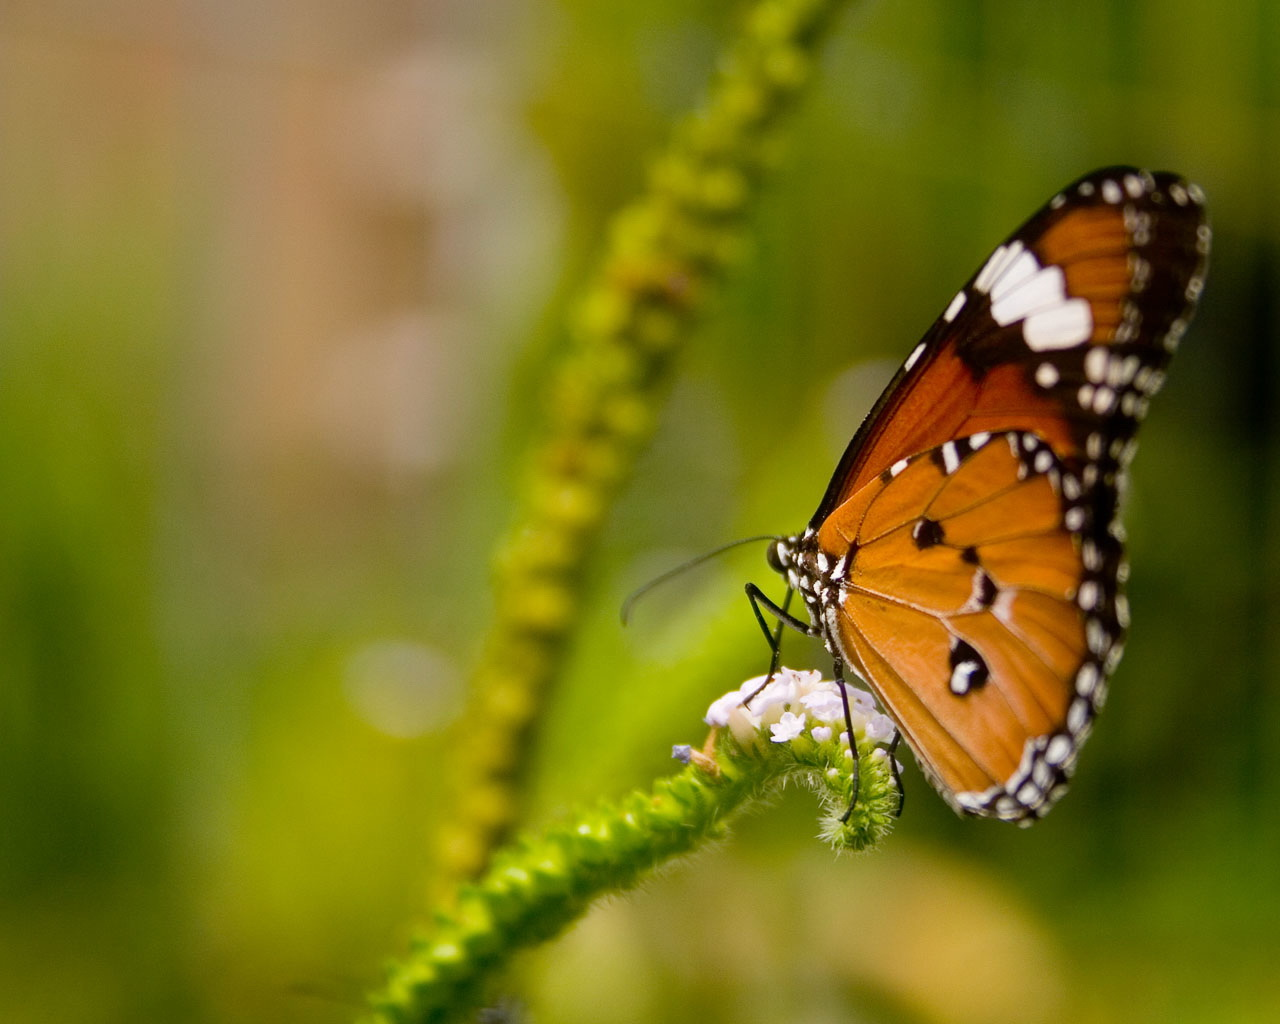 Butterfly Gallery: Amazing Natural Pictures,Seeneries,Wallpapers, Sceneries